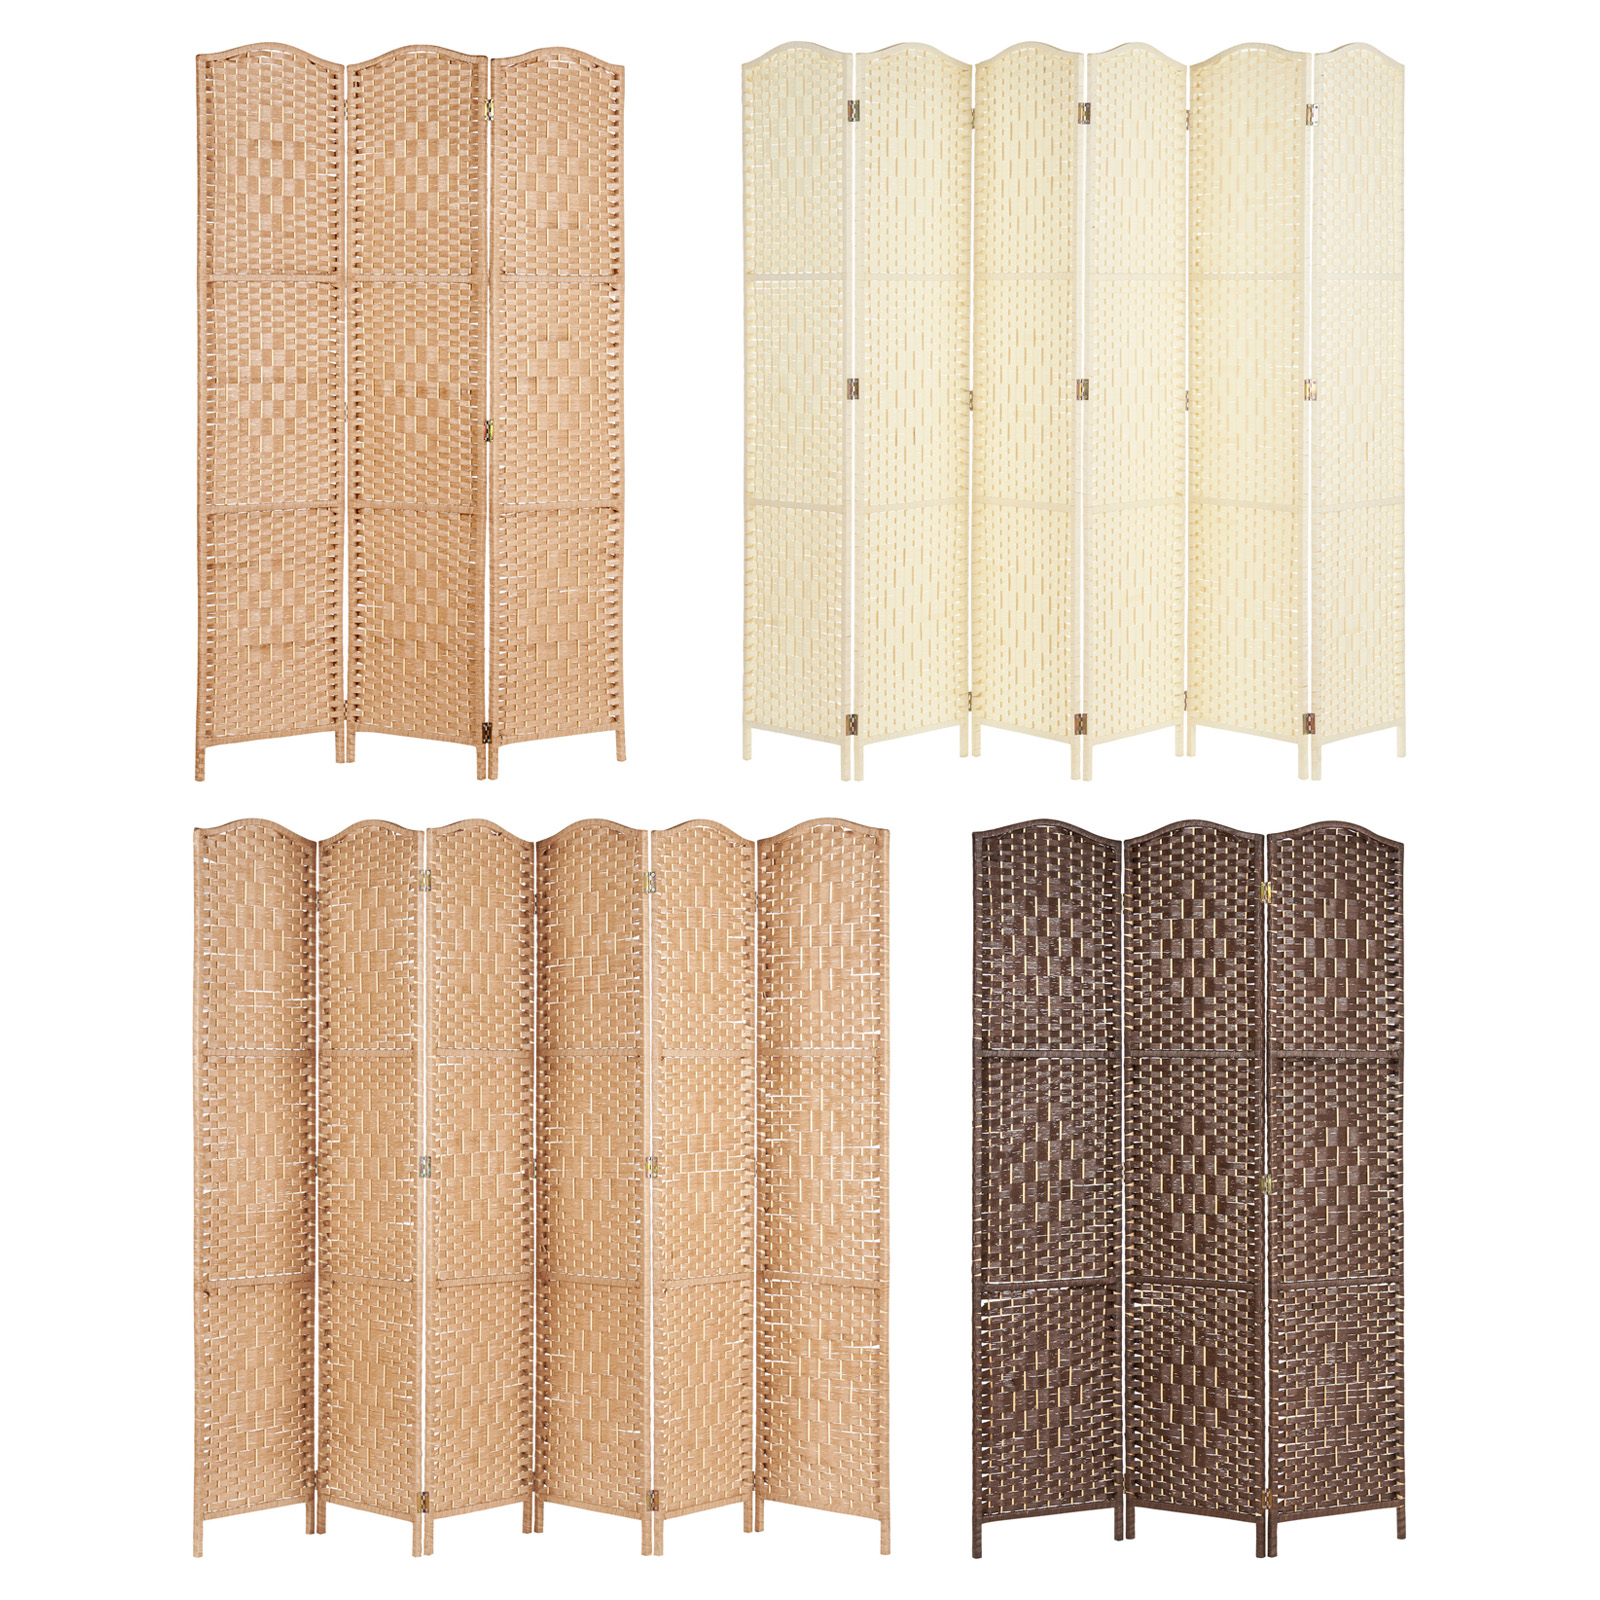 Solid Weave Wicker Folding Room Divider Hand Made Separator//Privacy Screen//Panel